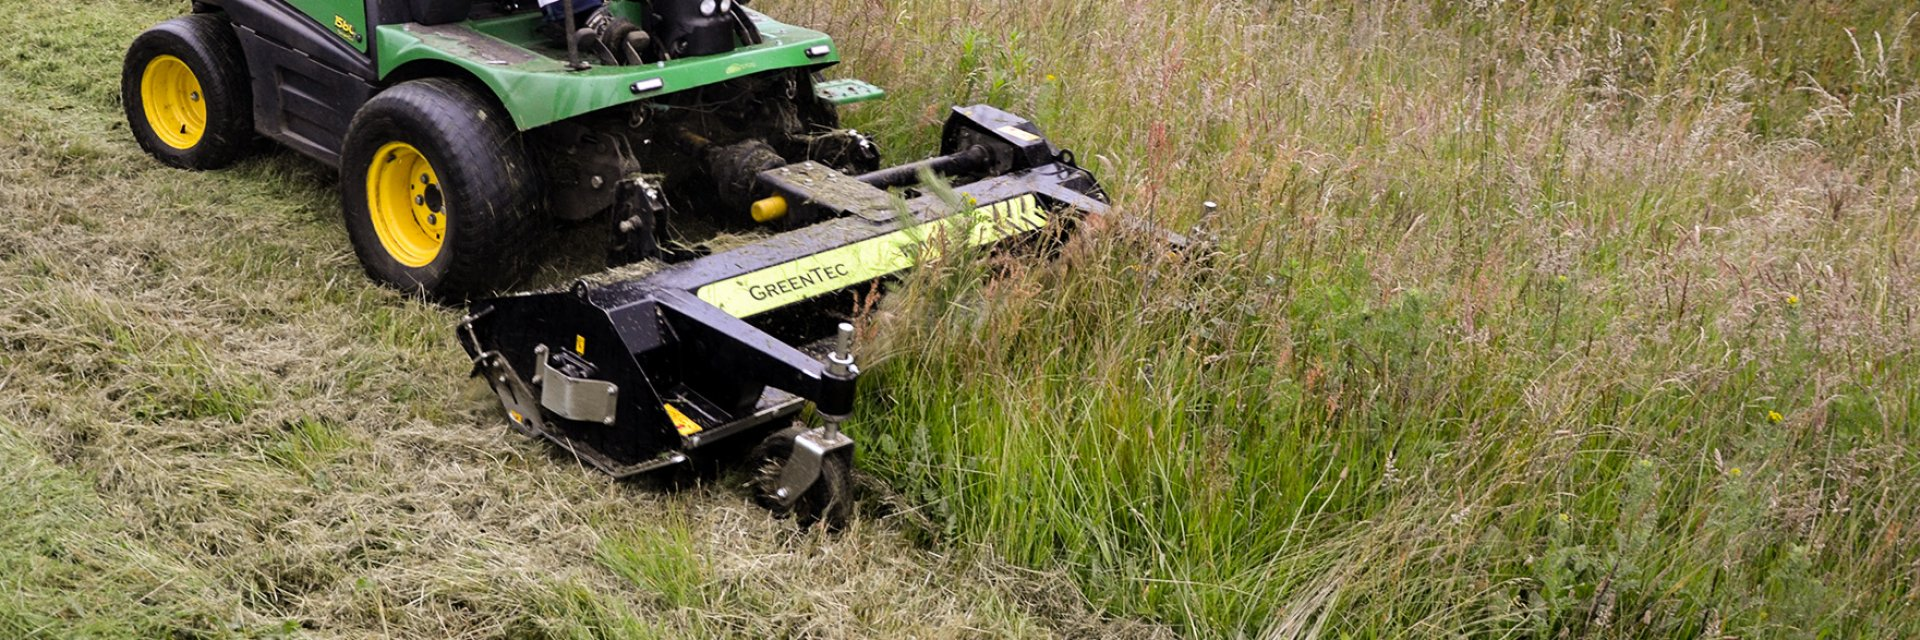 Front mounted flail mower for compact tractors and Municipal vehicles